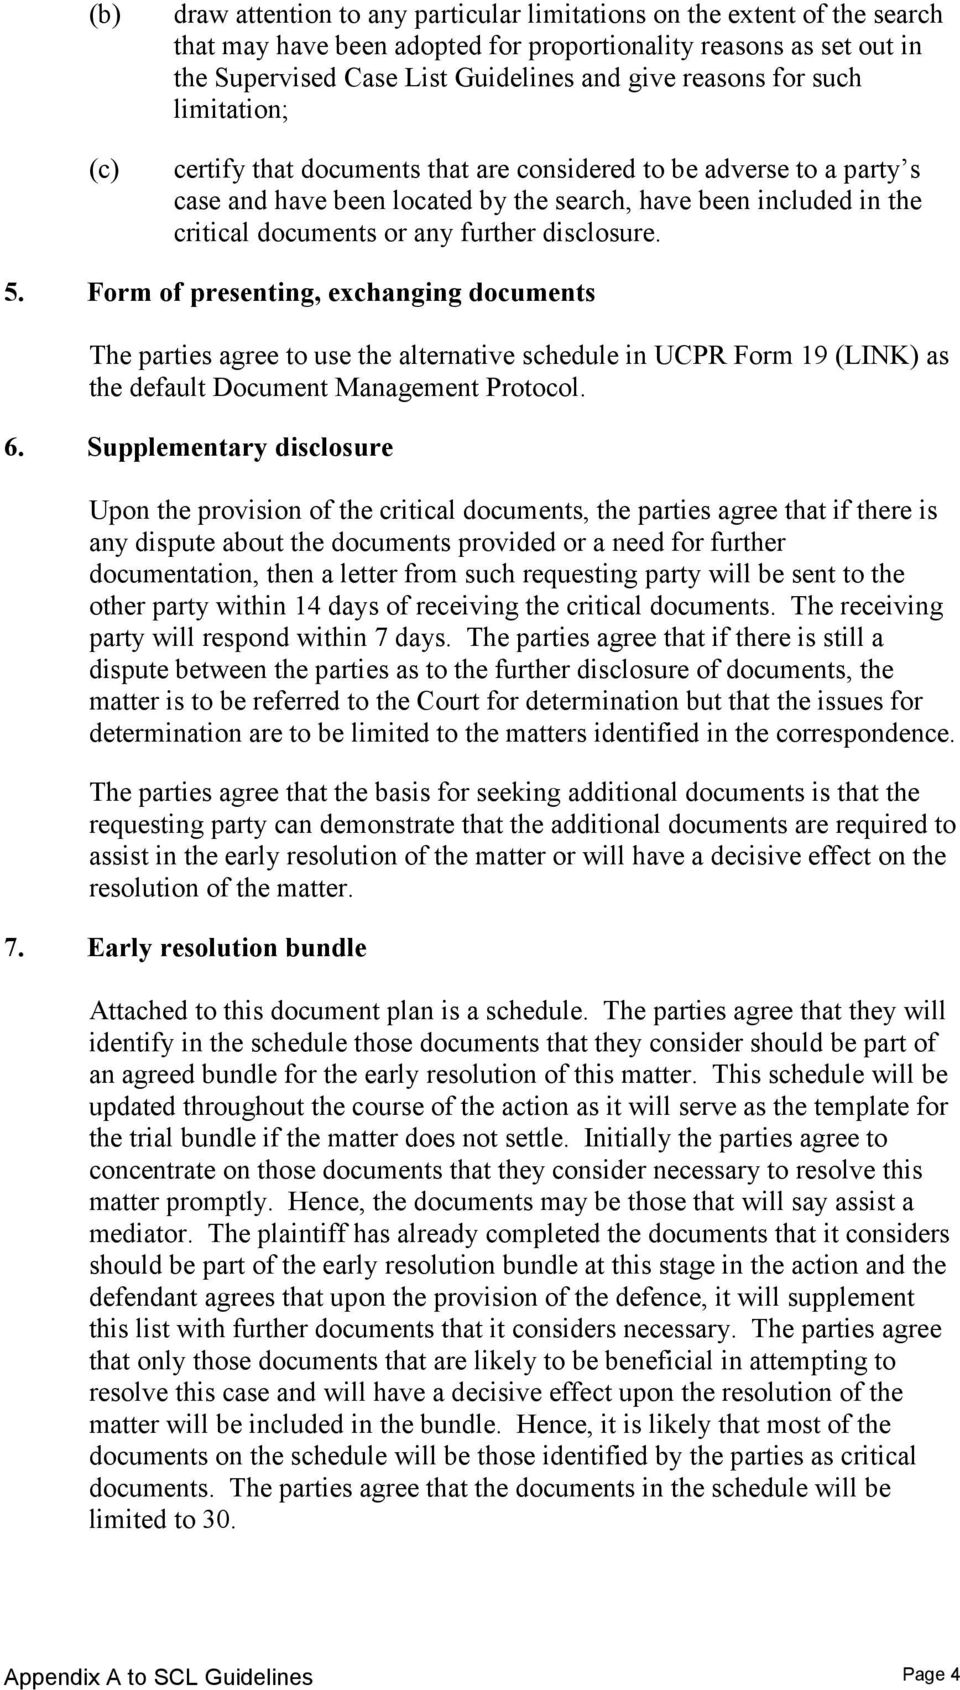 further disclosure. 5. Form of presenting, exchanging documents The parties agree to use the alternative schedule in UCPR Form 19 (LINK) as the default Document Management Protocol. 6.